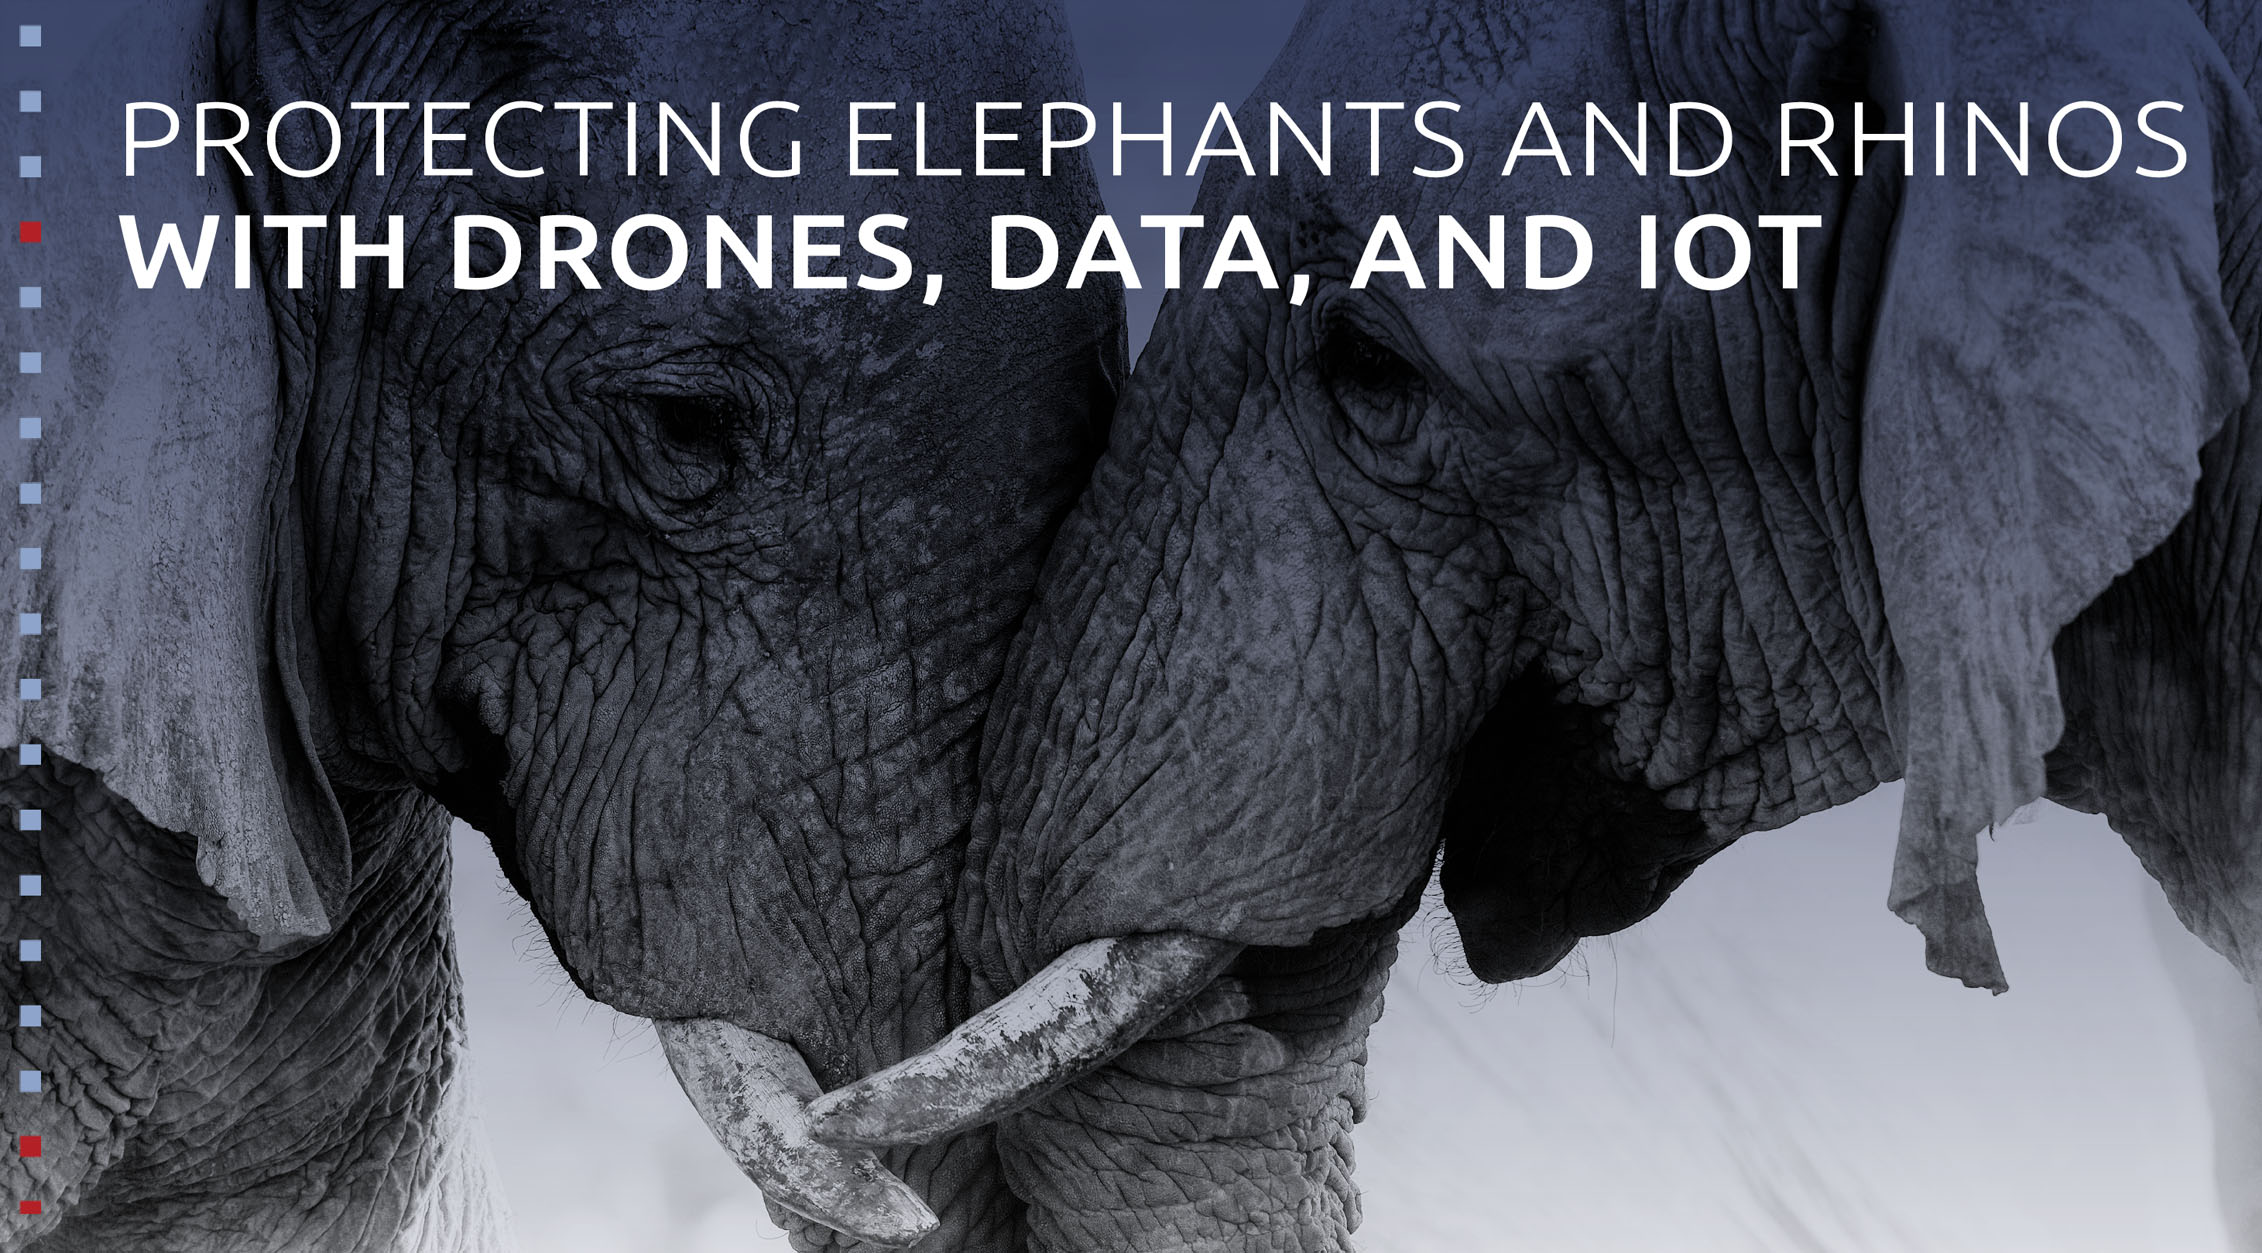 Protecting elephants and rhinos with drones, data, and IoT